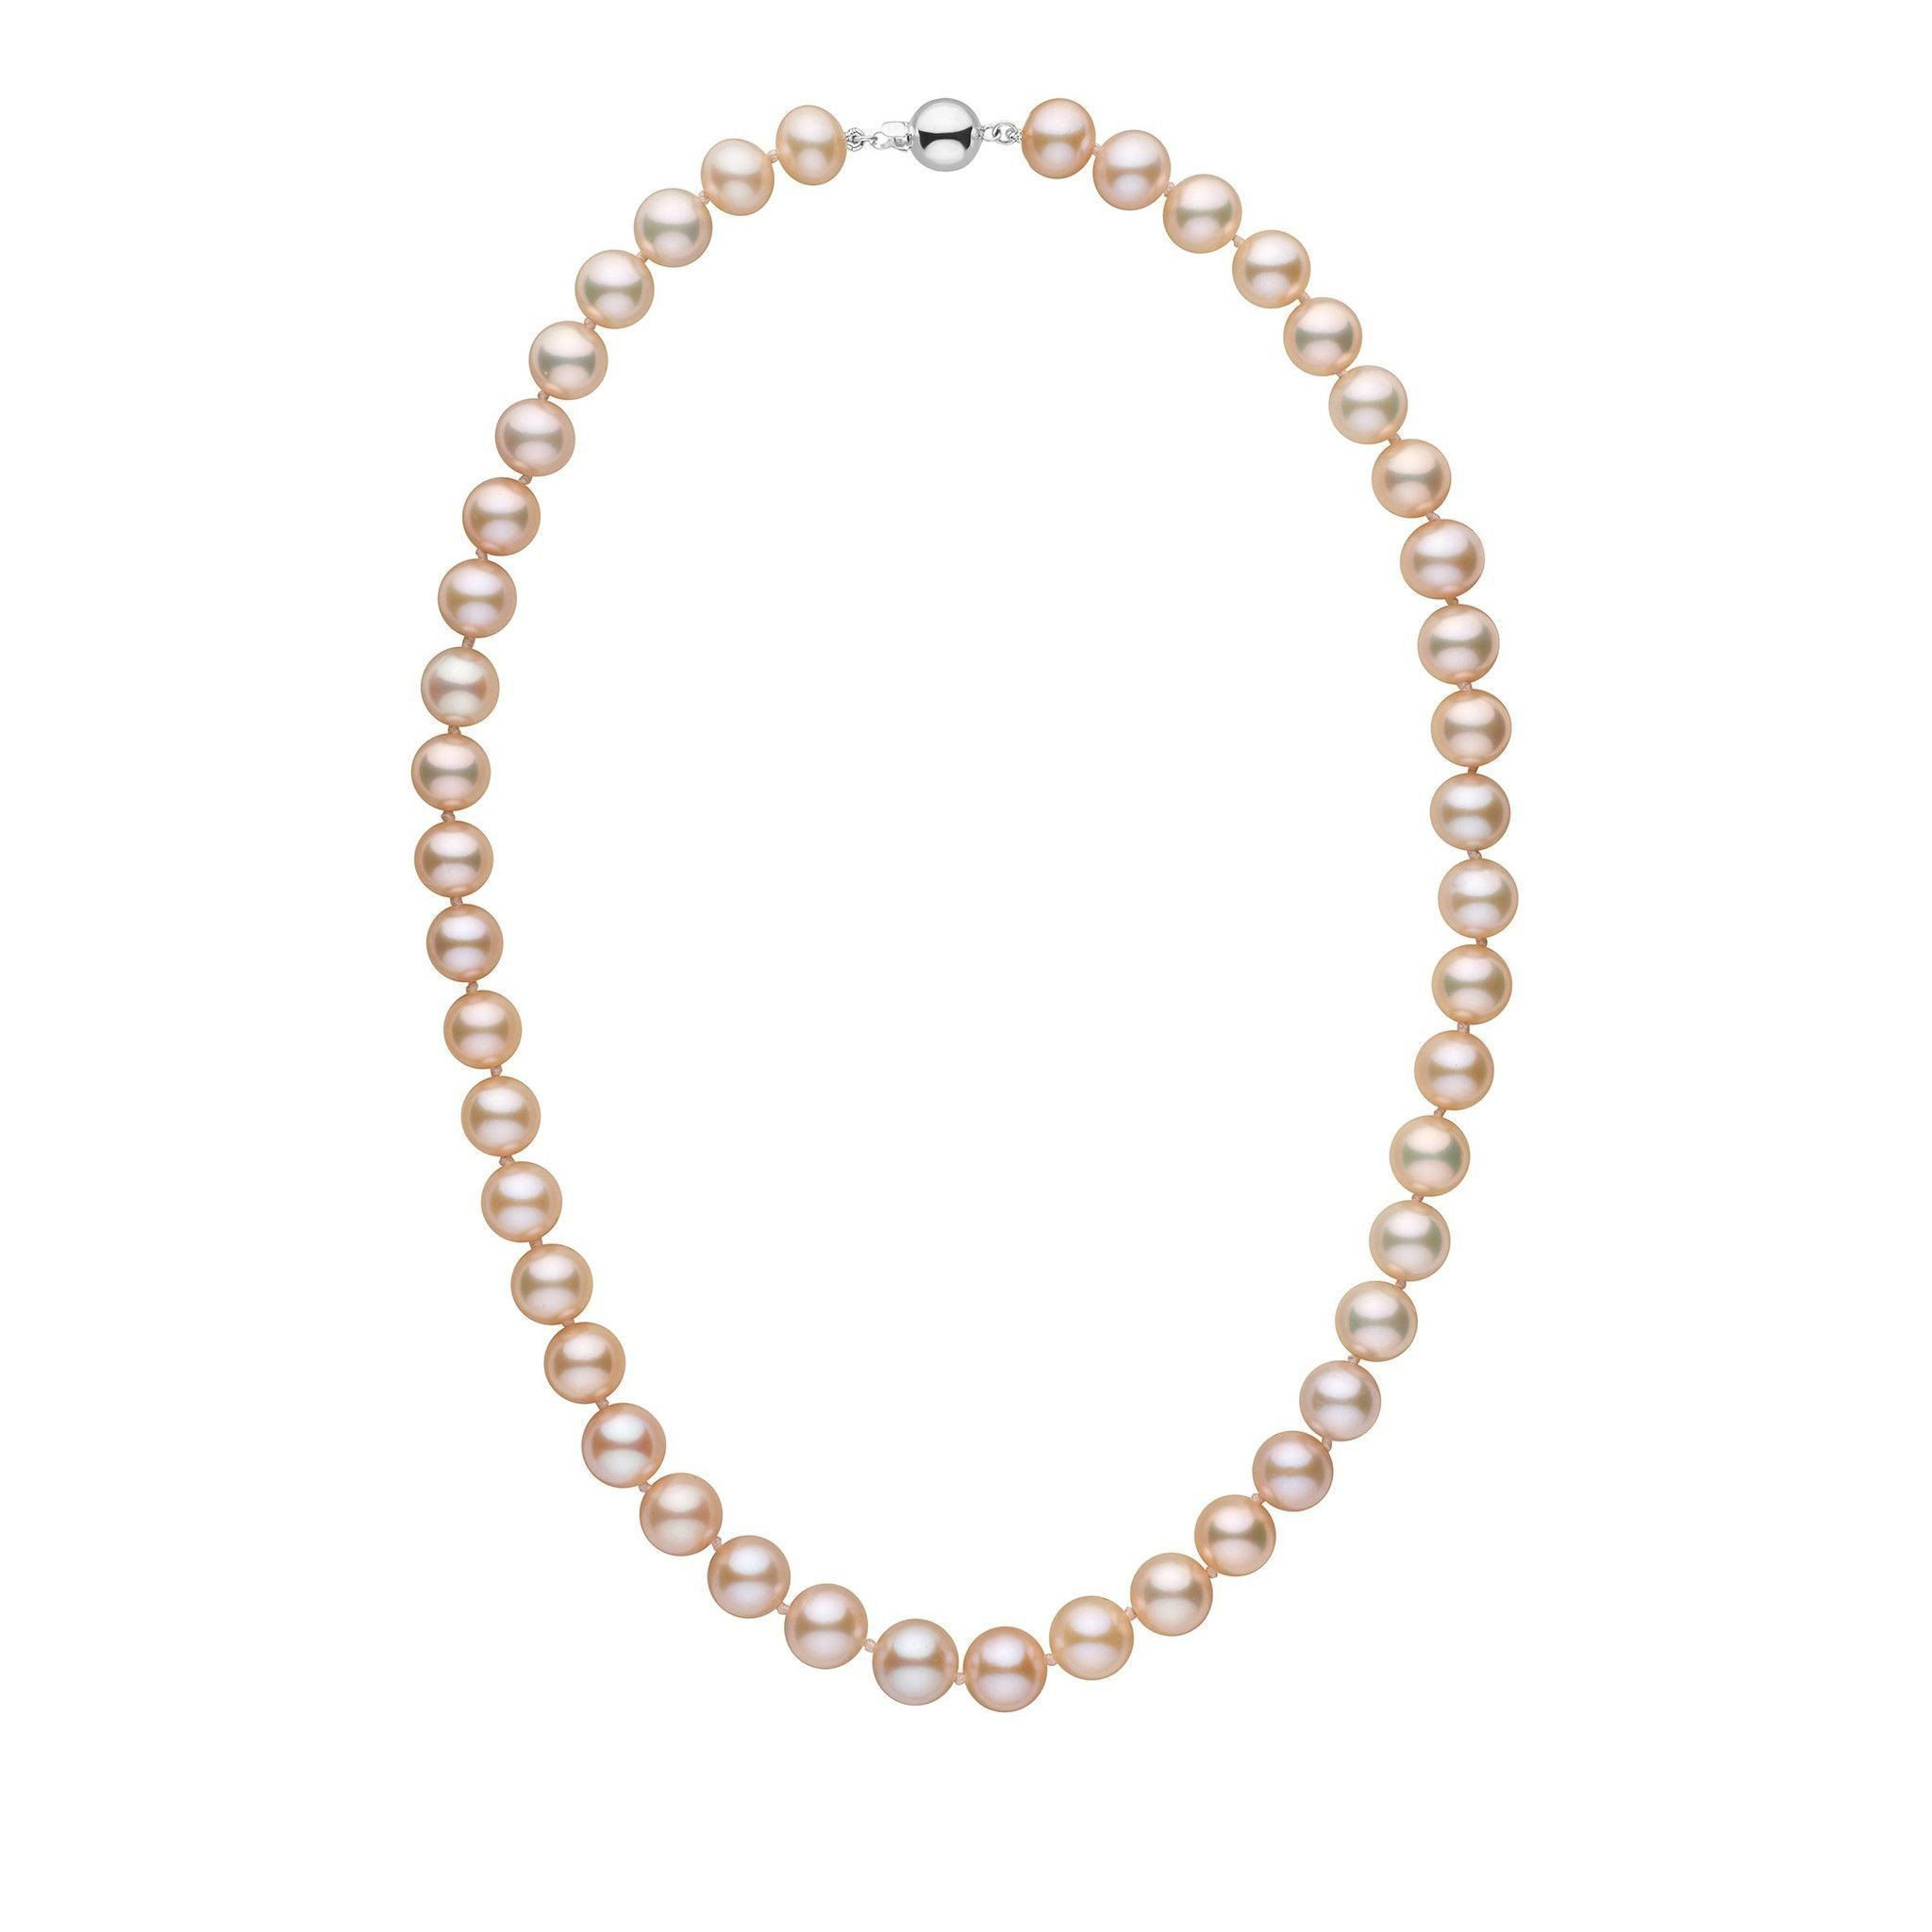 9.5-10.5 mm 18 inch AAA Pink to Peach Freshwater Pearl Necklace